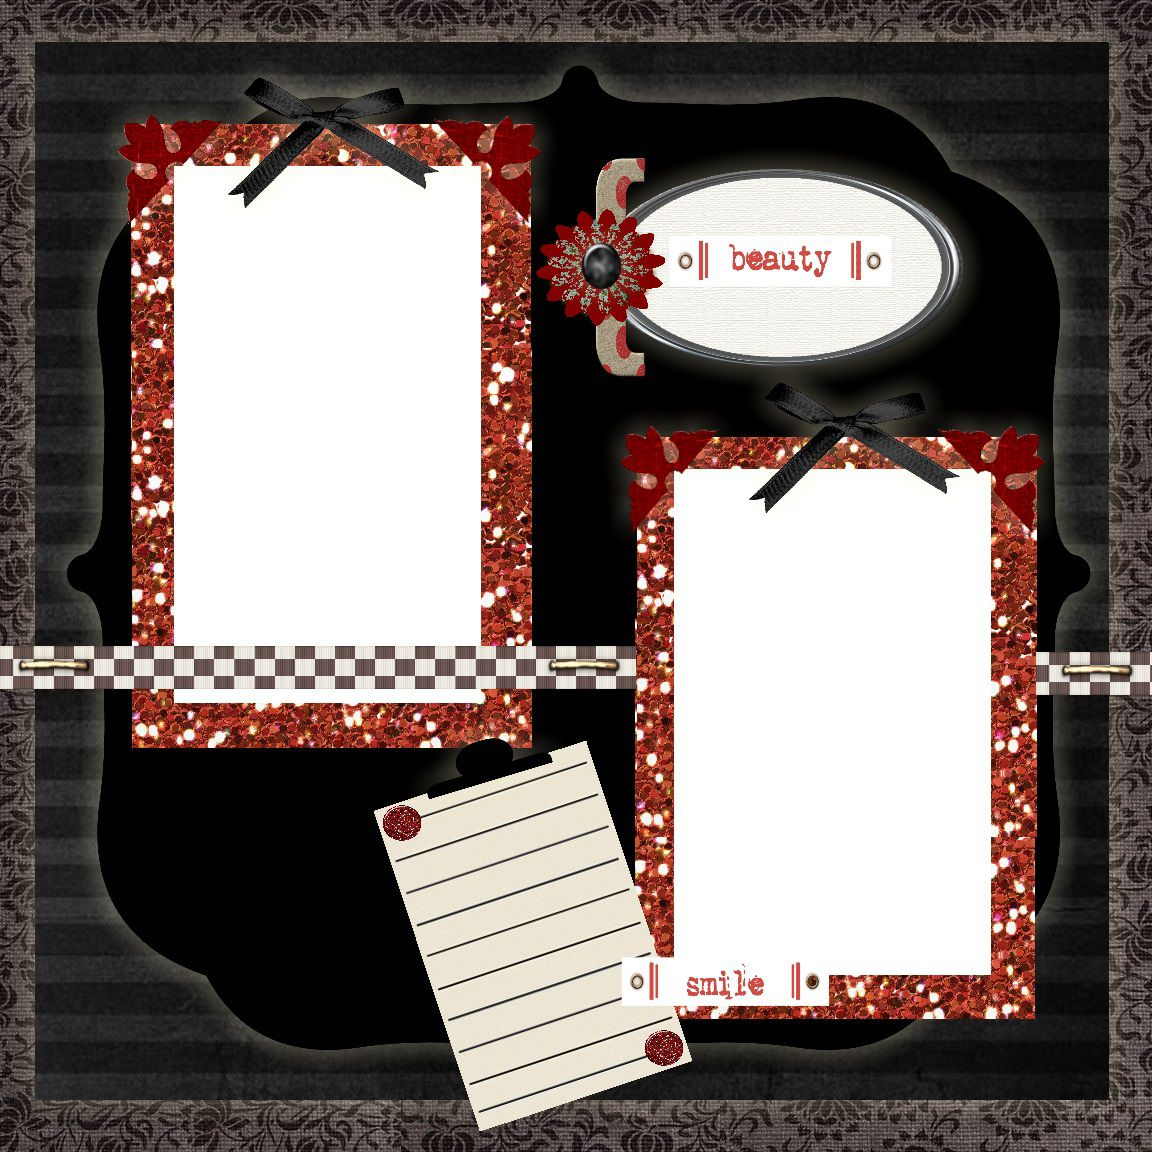 008 Archaicawful Free Printable Scrapbook Template Picture  Templates Paper Frame LayoutFull